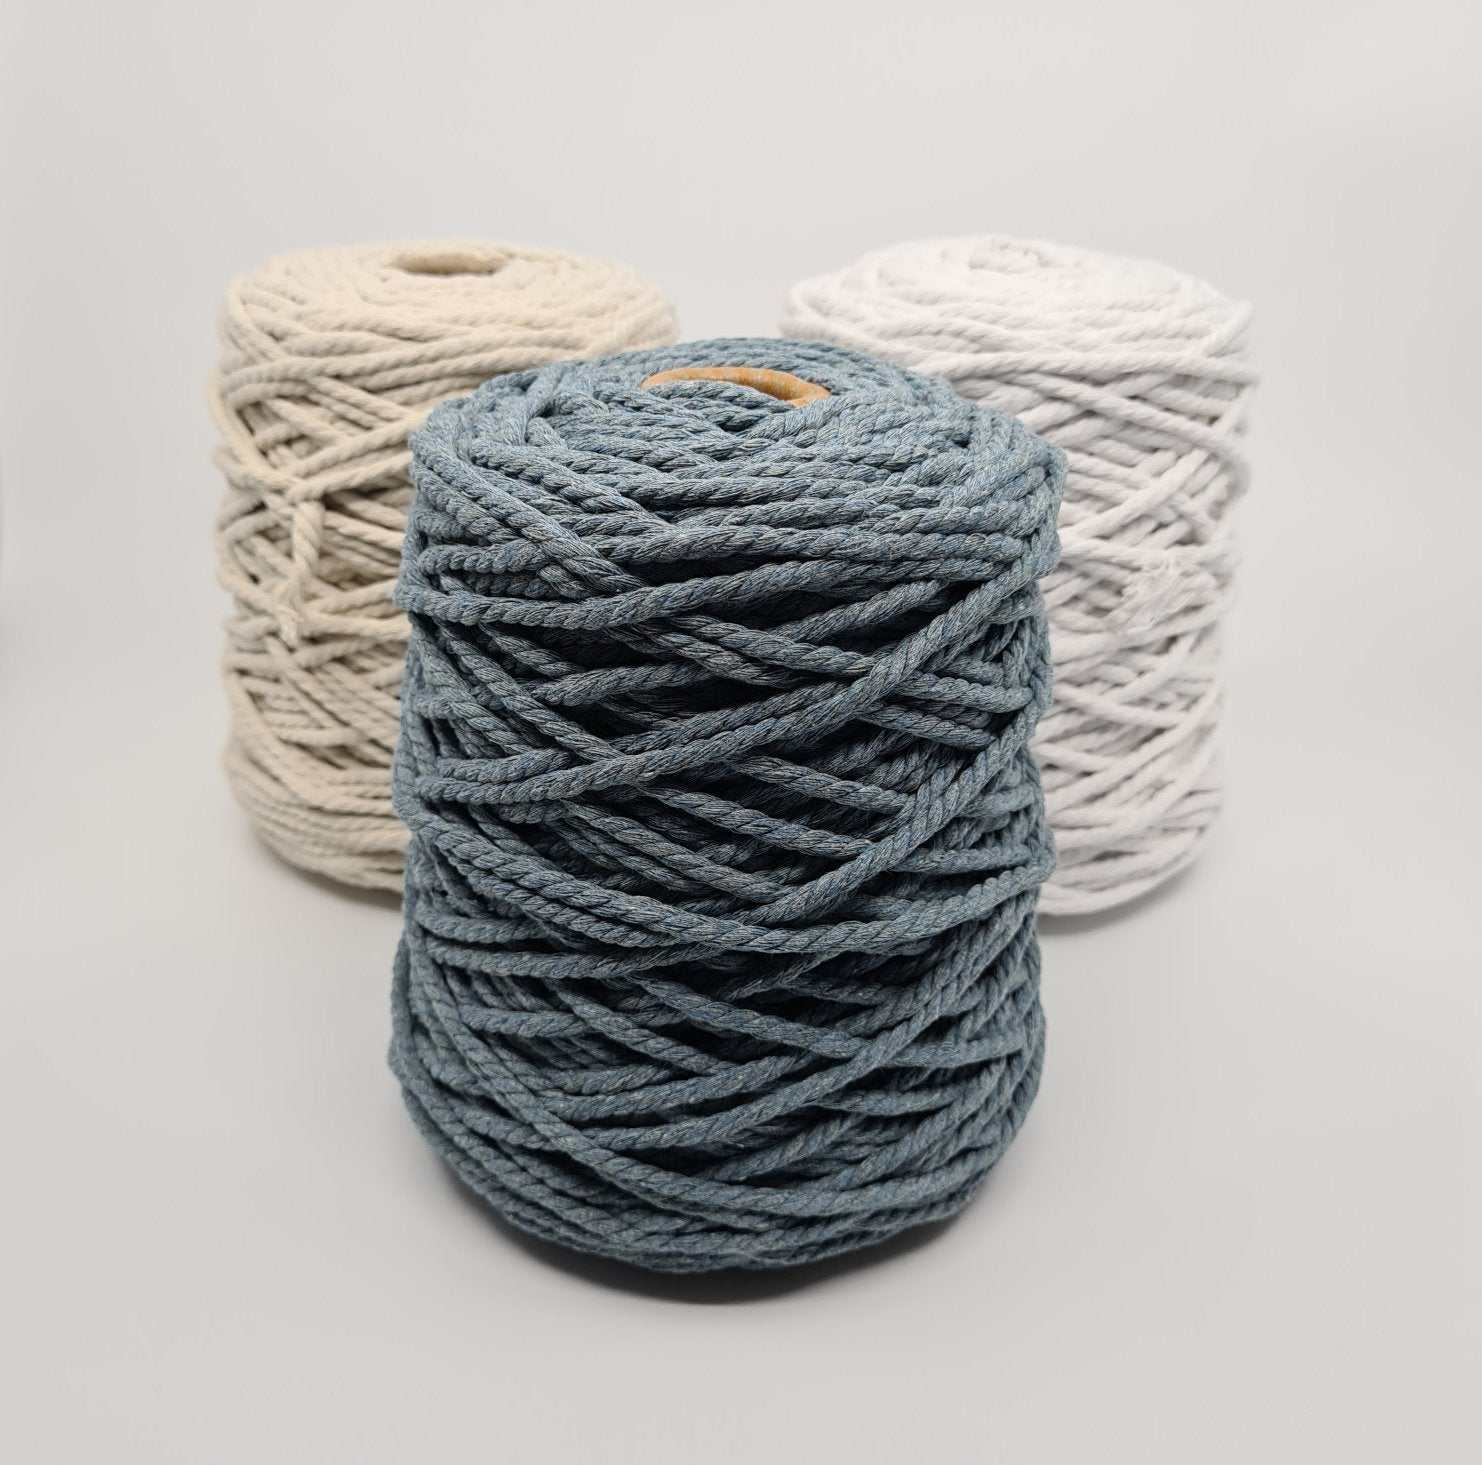 Macrame Cotton Rope - Storm Blue